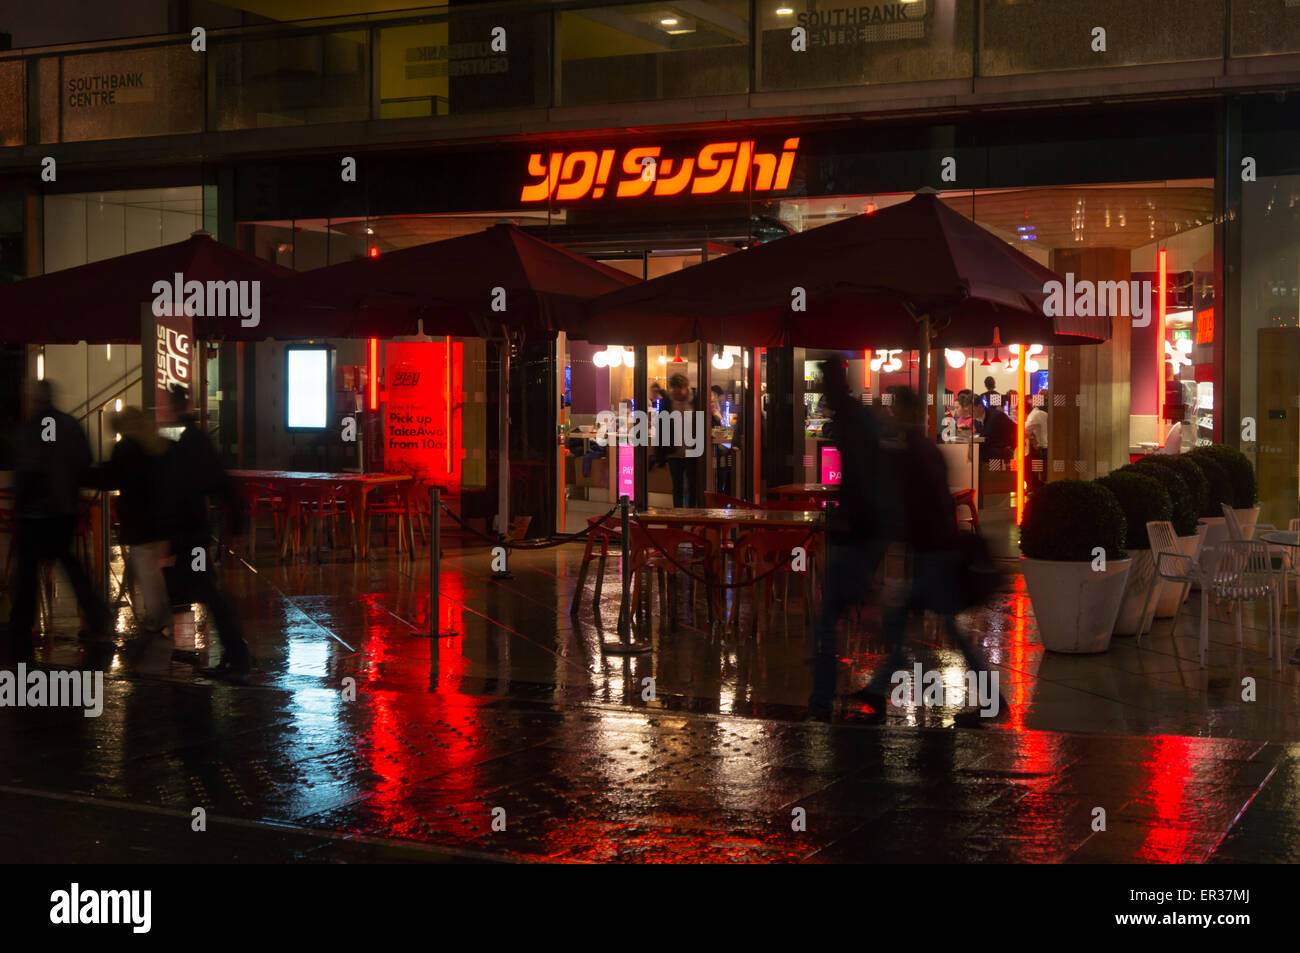 Branch of Yo! Sushi on the Southbank in London at night in the rain. - Stock Image